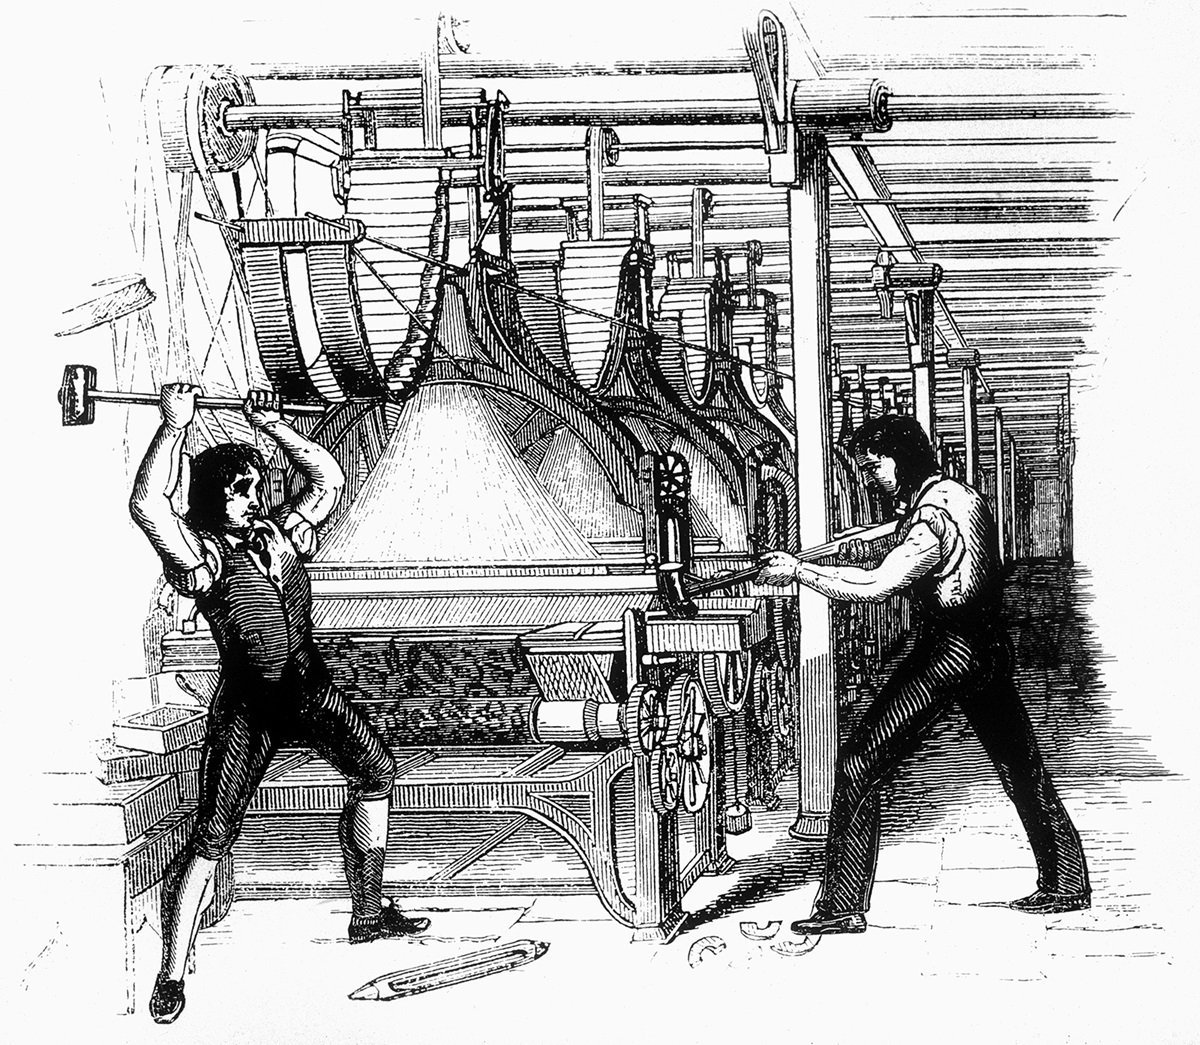 19th century engraving of Luddites smashing factory equiptment